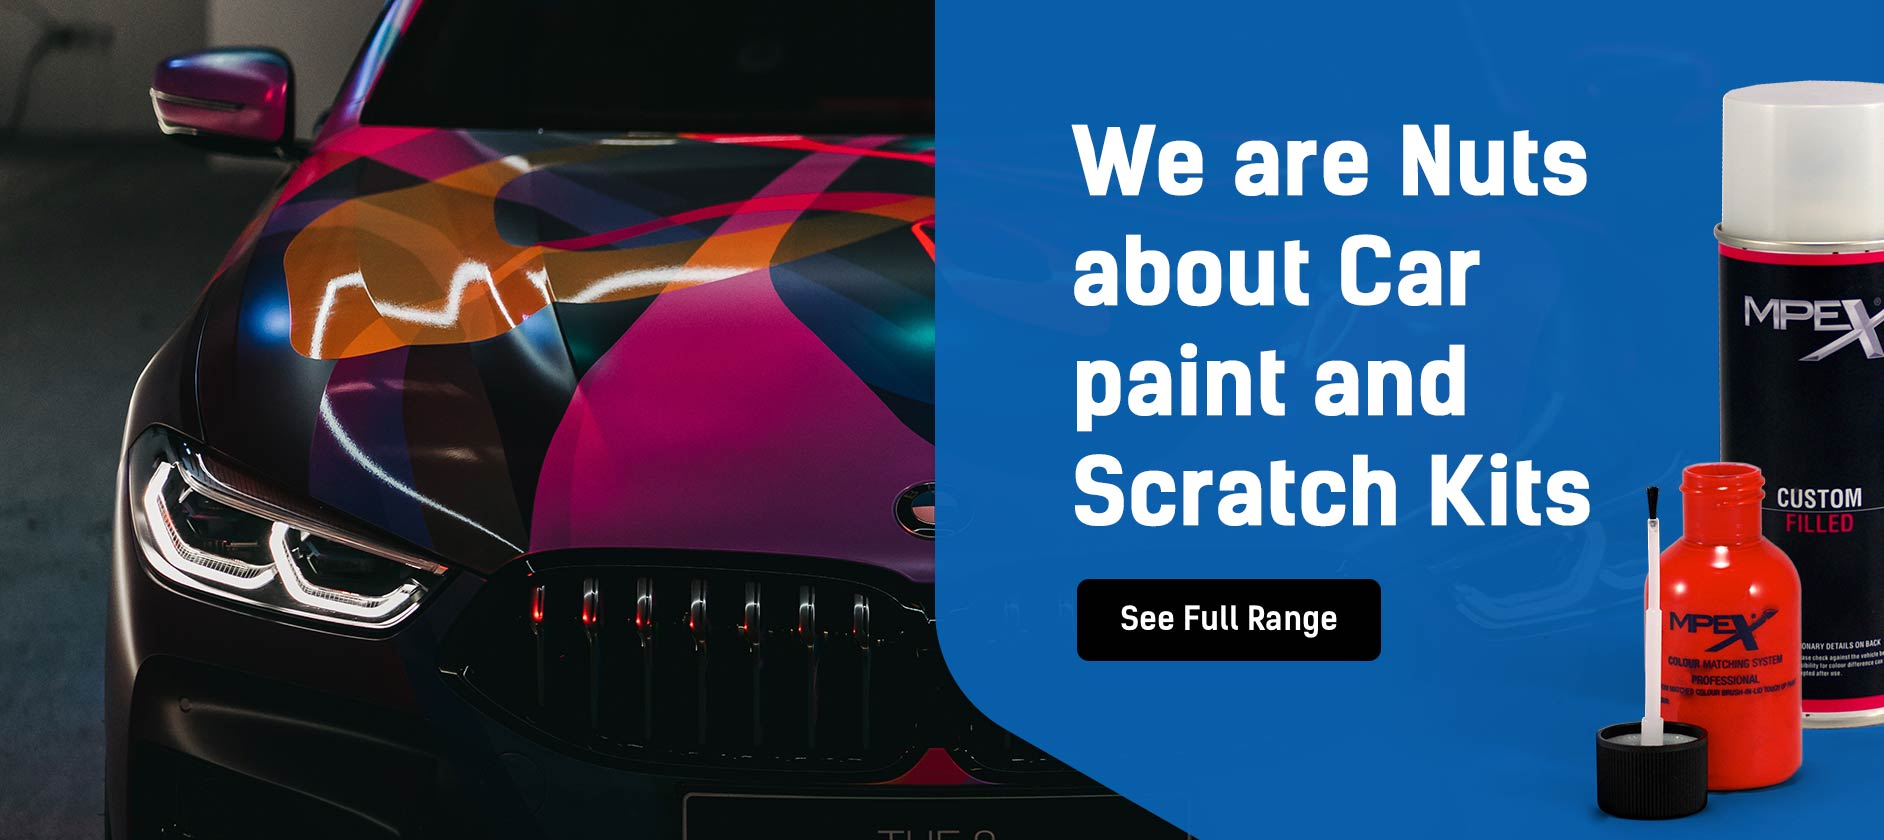 We are Nuts about Car paint and Scratch Kits